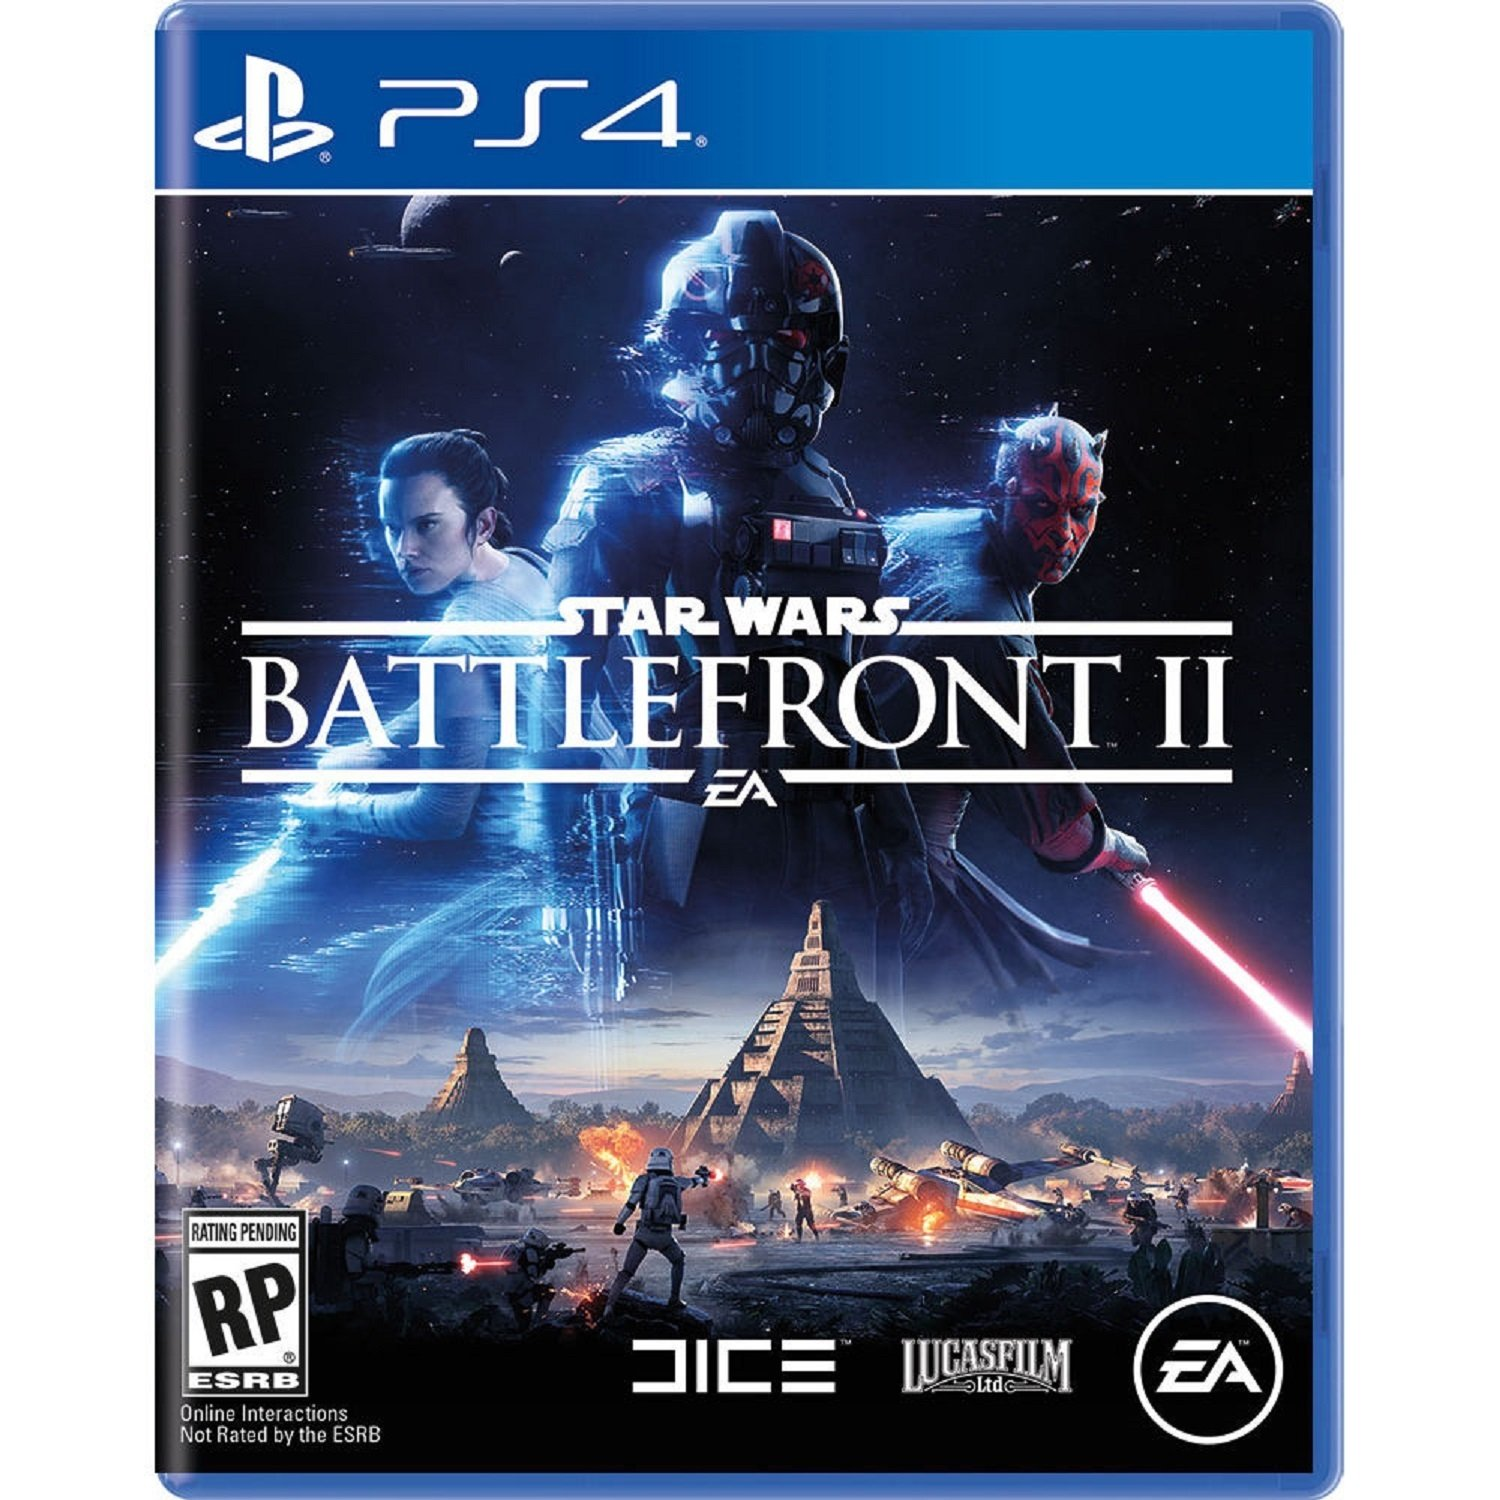 Electronic Arts Star Wars Battlefront Ii Ps4 Multicolor Sony Star Wars Battlefront Battlefront Battlefront 2 Ps4